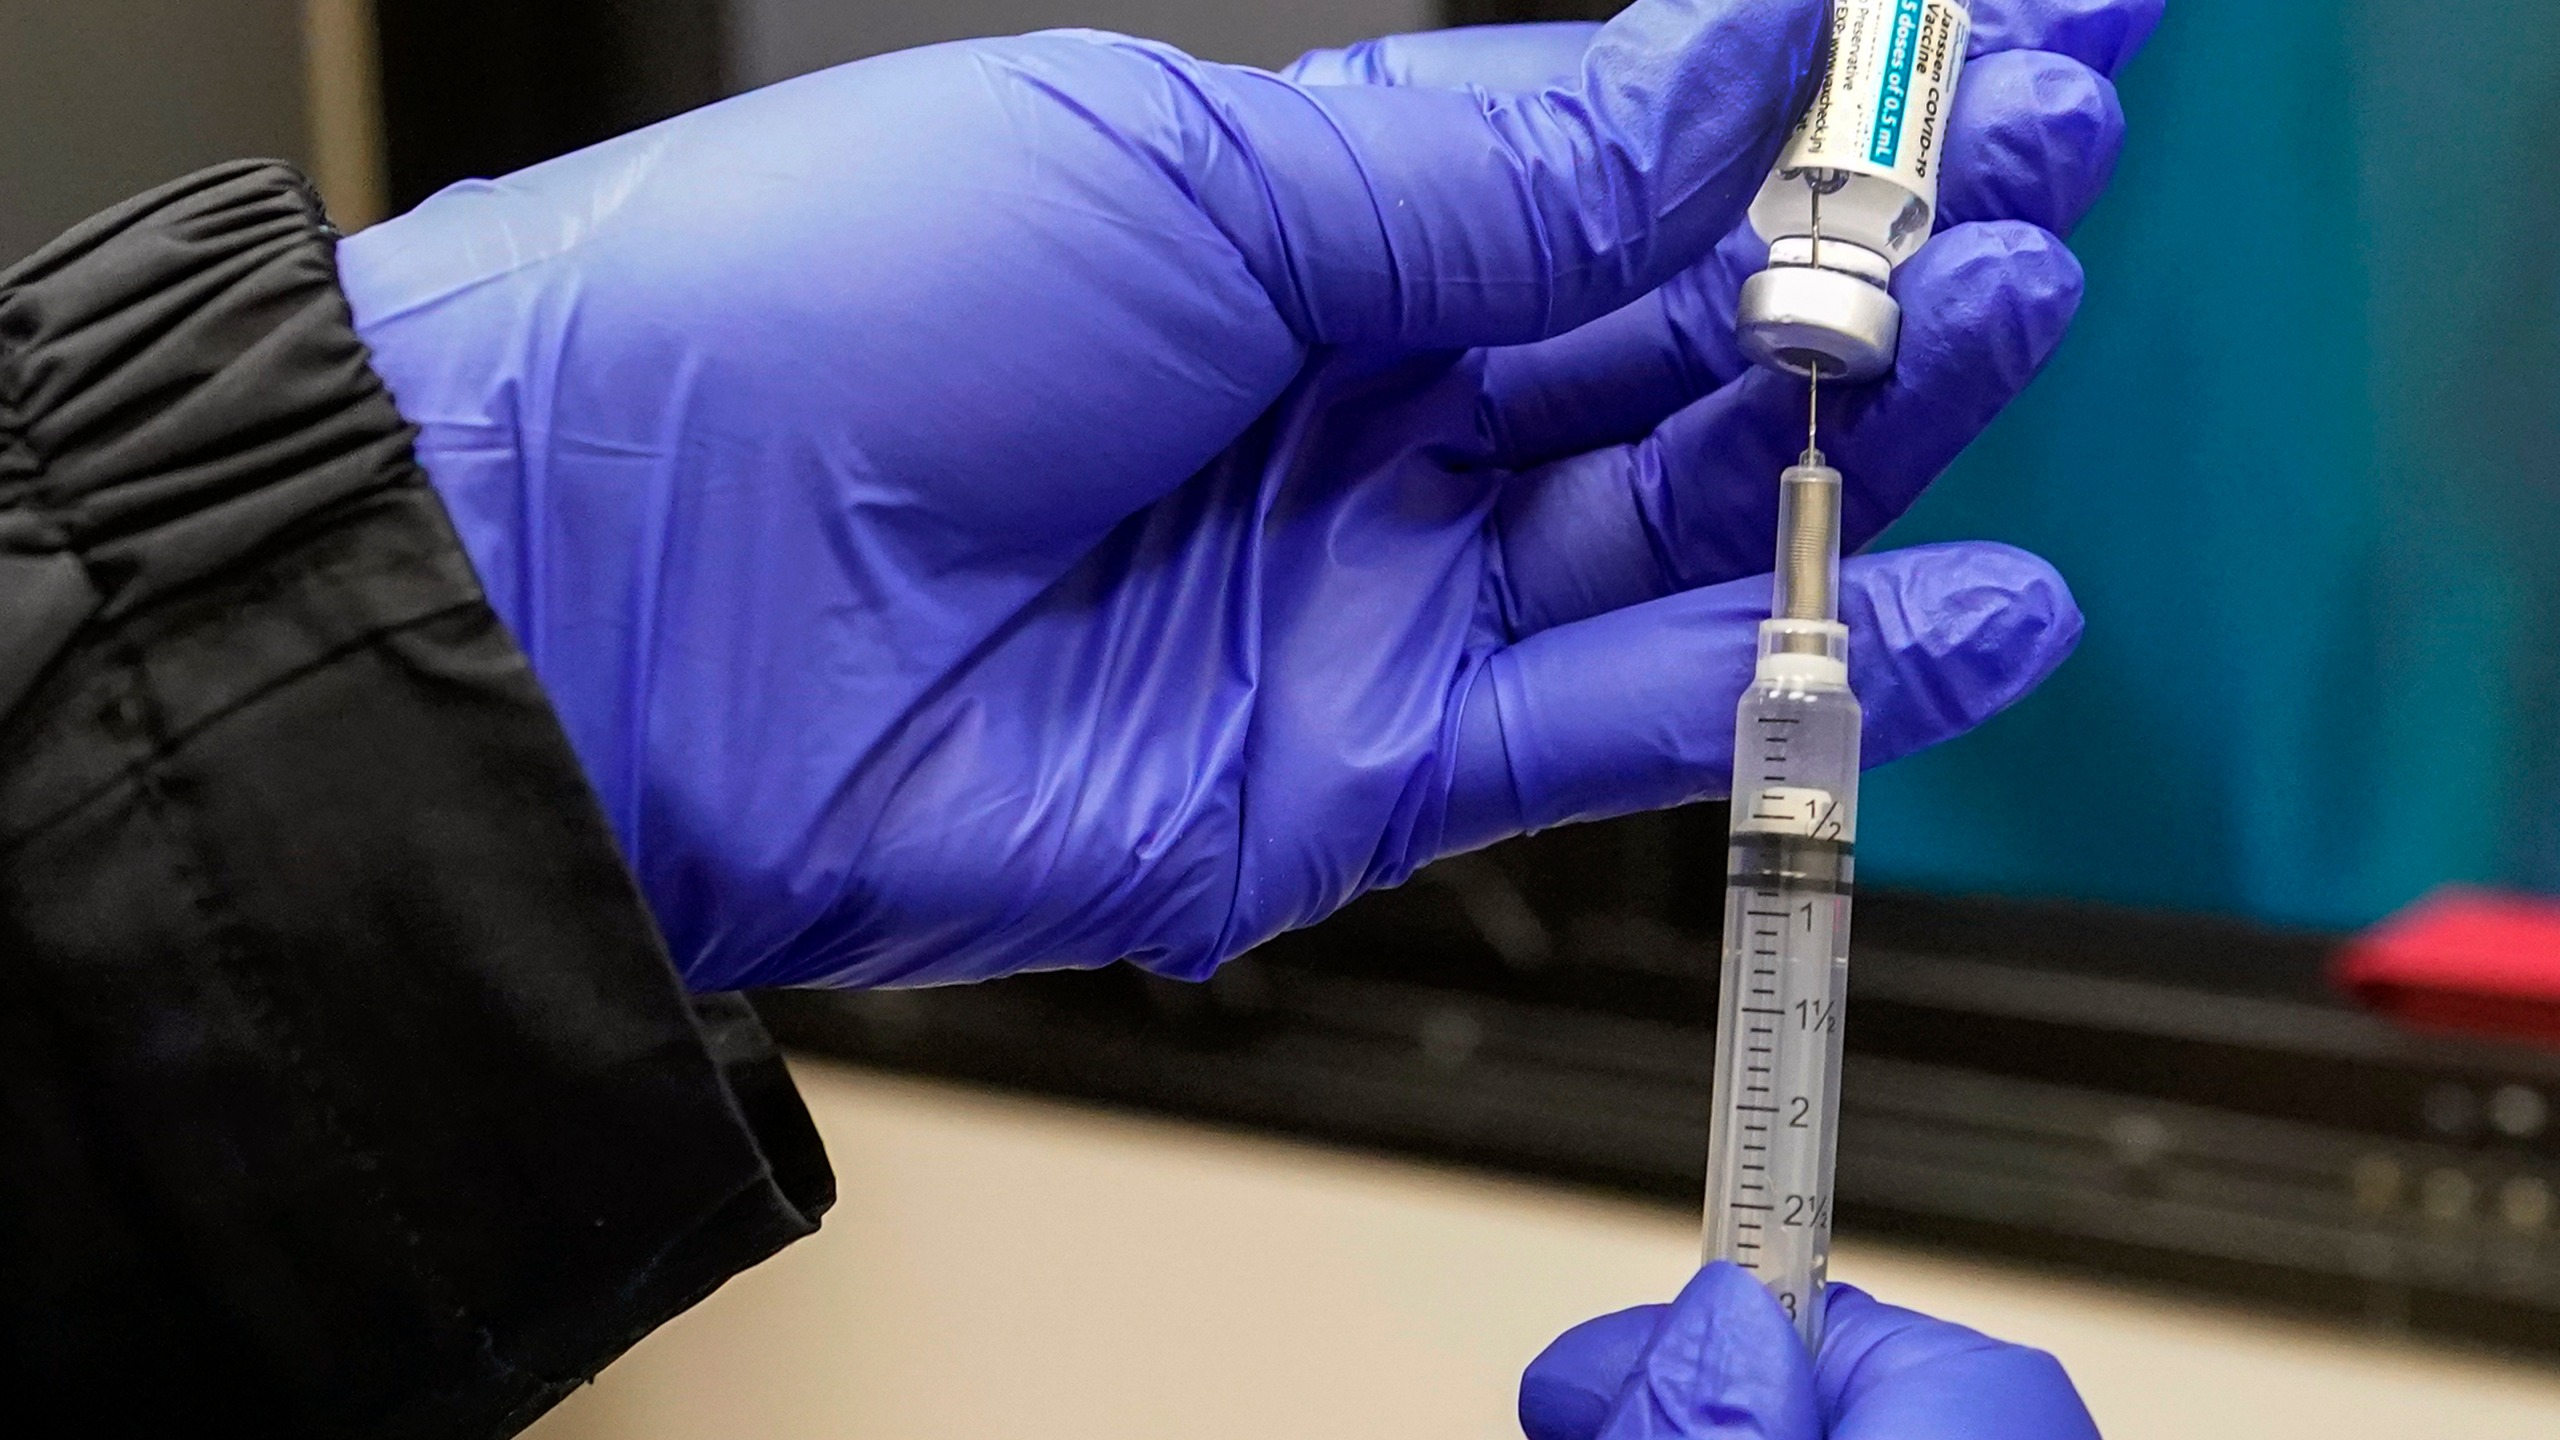 "In this March 31, 2021, file photo, a nurse fills a syringe with Johnson & Johnson's one-dose COVID-19 vaccine at the Vaxmobile, at the Uniondale Hempstead Senior Center, in Uniondale, N.Y. U.S. health regulators on Tuesday, April 13, is recommending a ""pause"" in using the vaccine to investigate reports of potentially dangerous blood clots. (AP Photo/Mary Altaffer, File)"